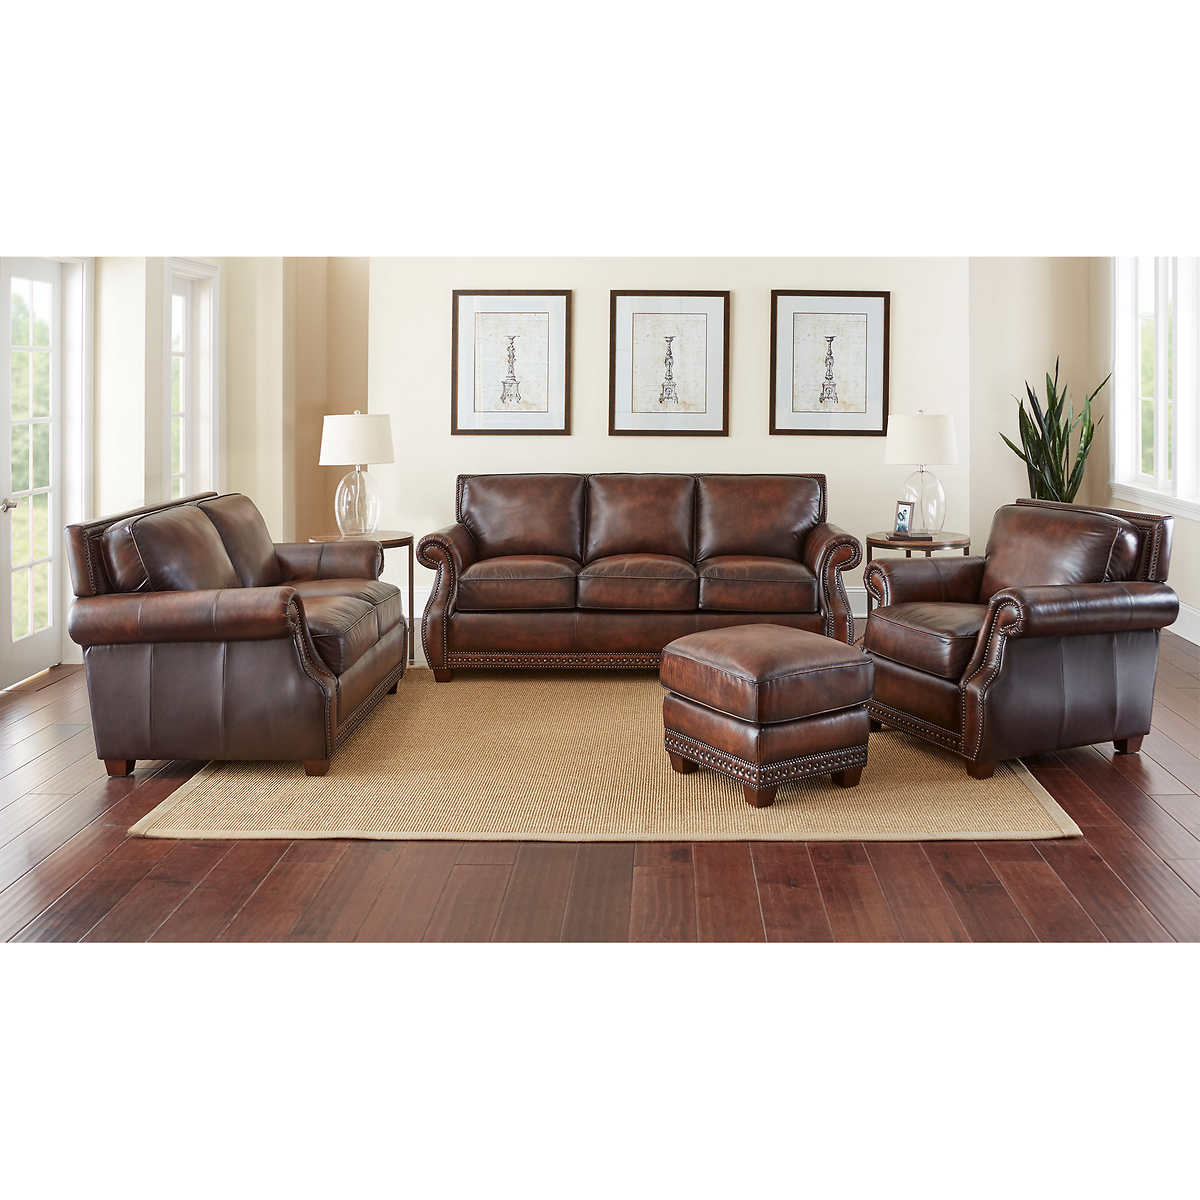 Leather Sofas   Sectionals   Costco Cameron Park 4 piece Top Grain Leather Set. Costco Living Room. Home Design Ideas